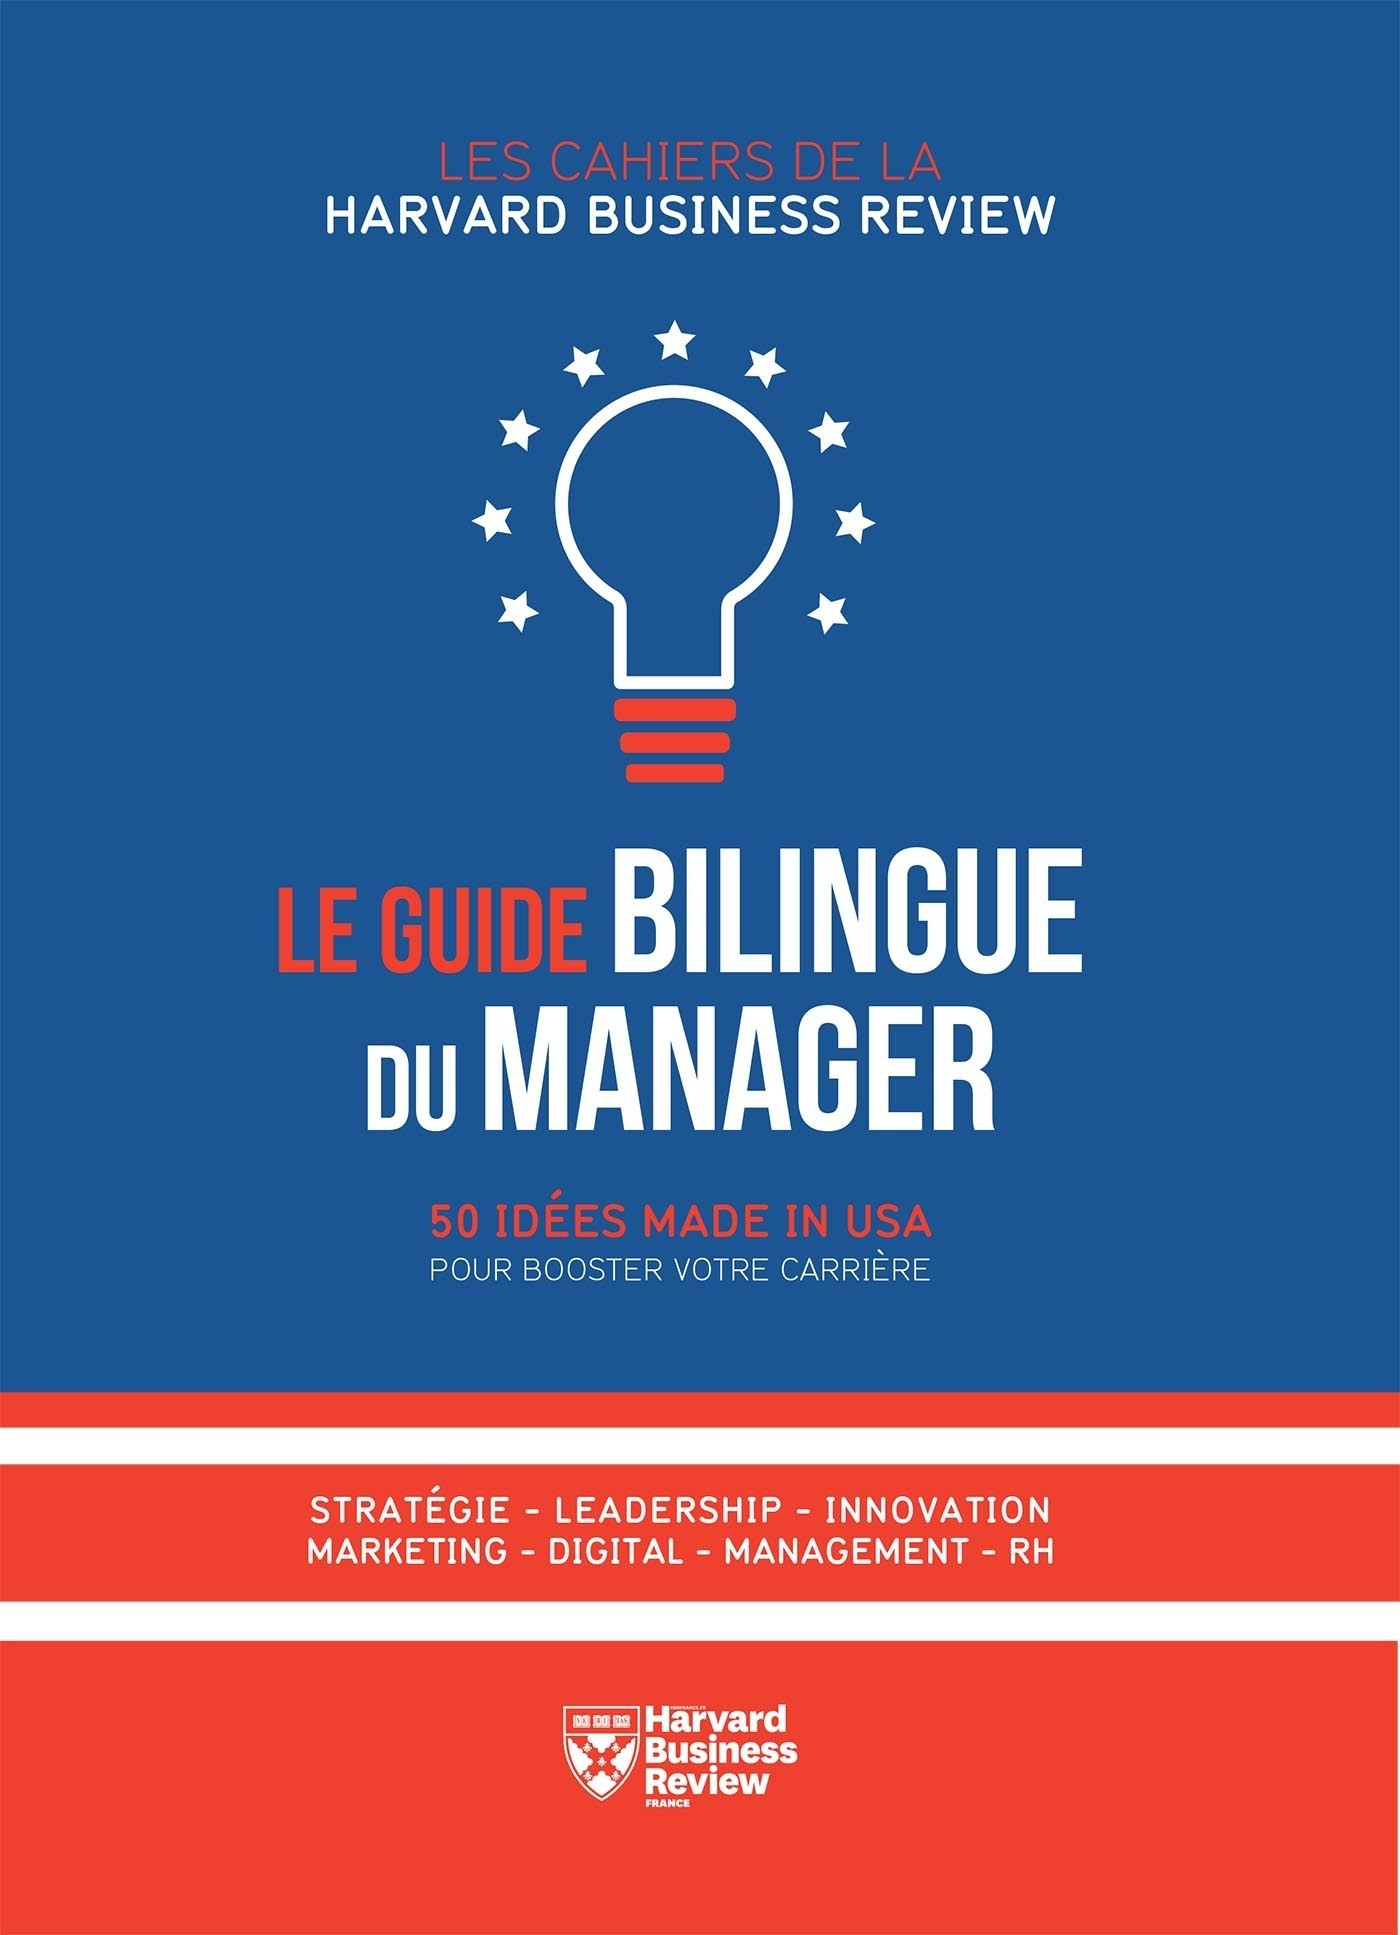 Le guide bilingue du manager